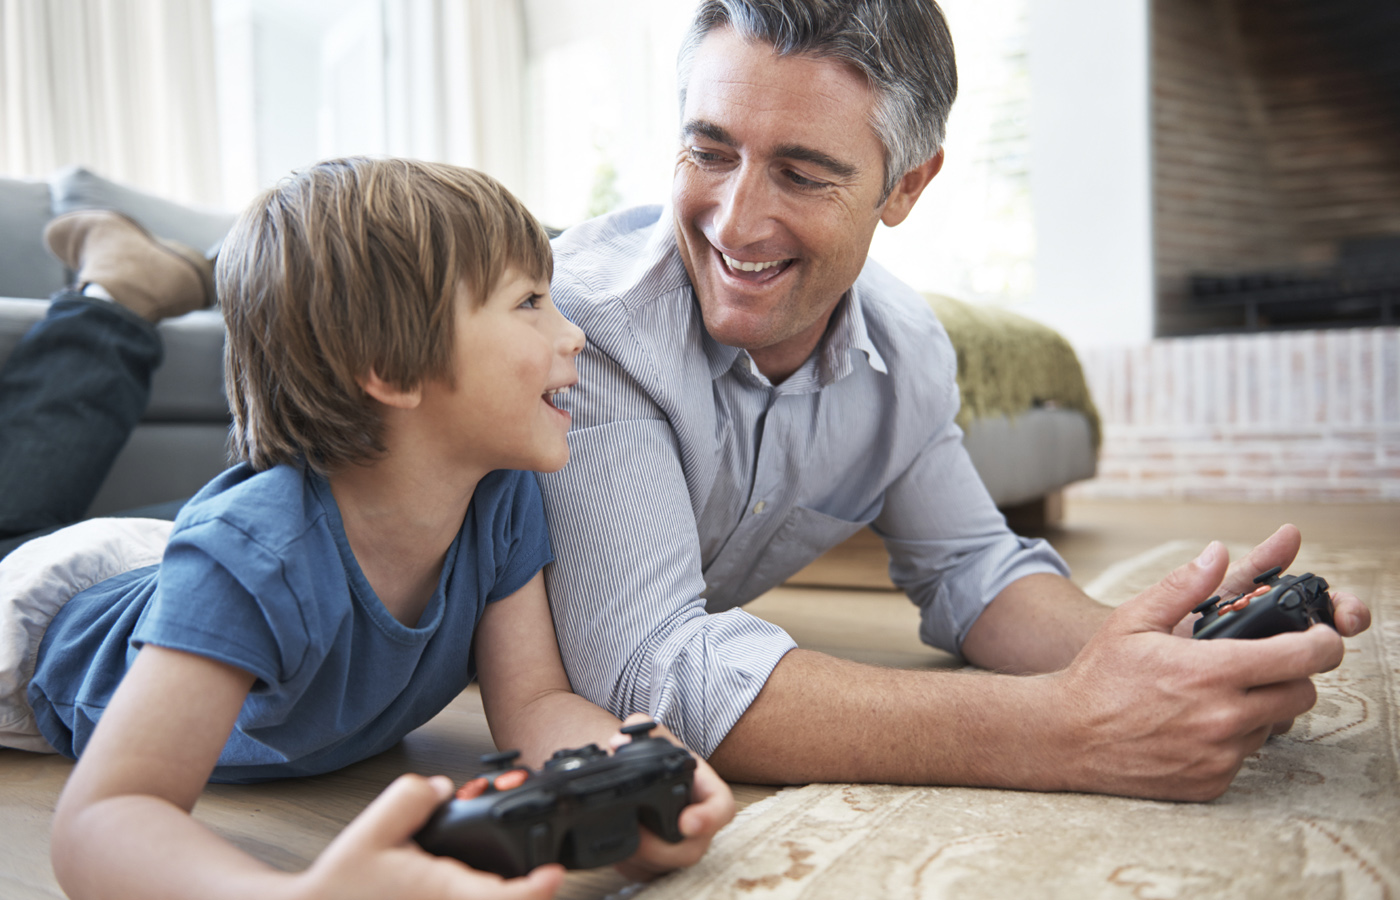 video games and children Yes, games can be addictive in some cases but, no, there isn't any meaningful evidence that video games lead to abhorrent or violent behavior.